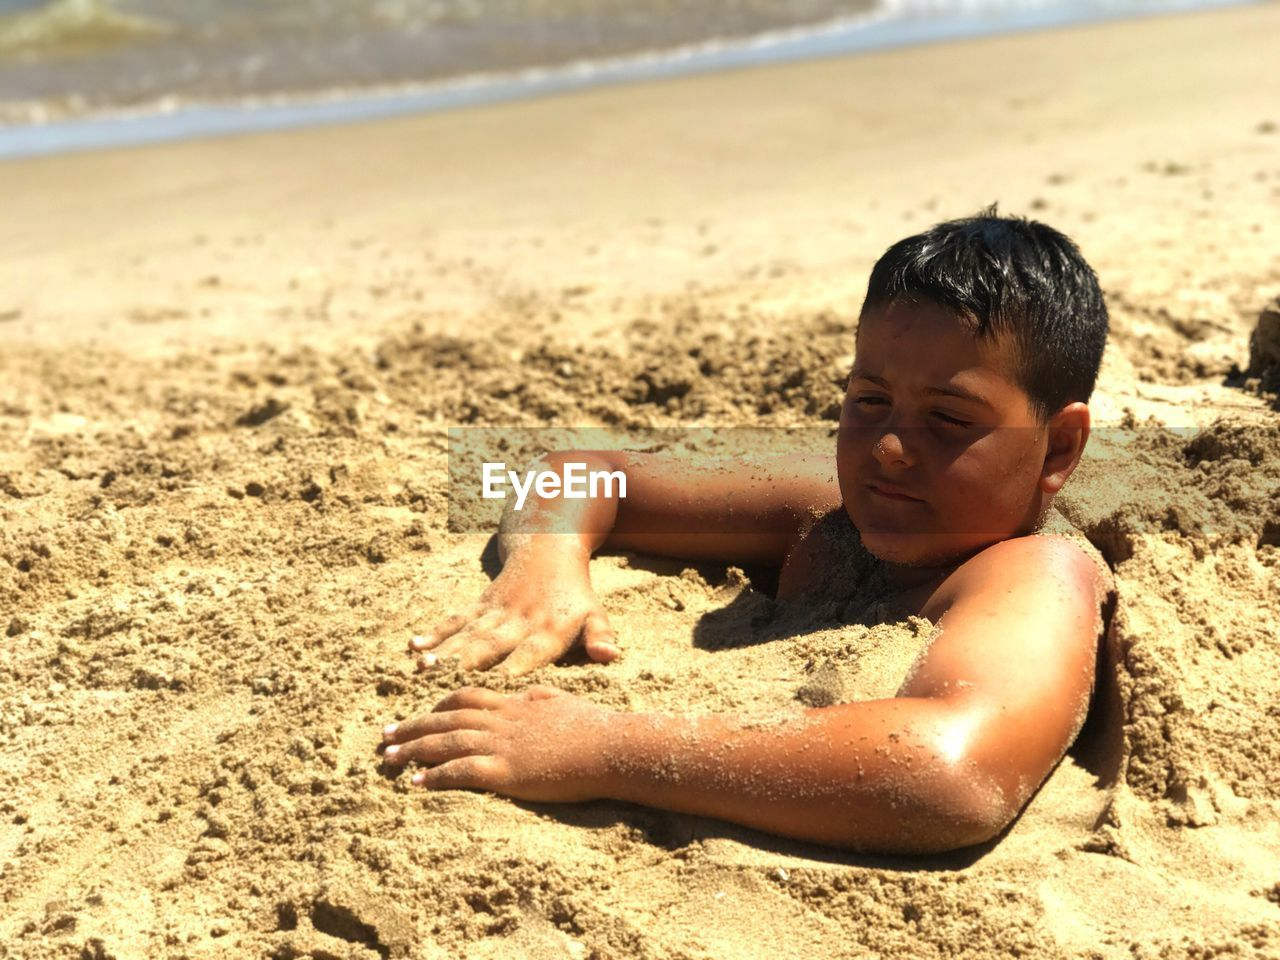 sand, beach, childhood, boys, one person, shirtless, real people, shore, outdoors, water, day, focus on foreground, elementary age, sunlight, leisure activity, vacations, sea, nature, lifestyles, sand pail and shovel, beauty in nature, one boy only, close-up